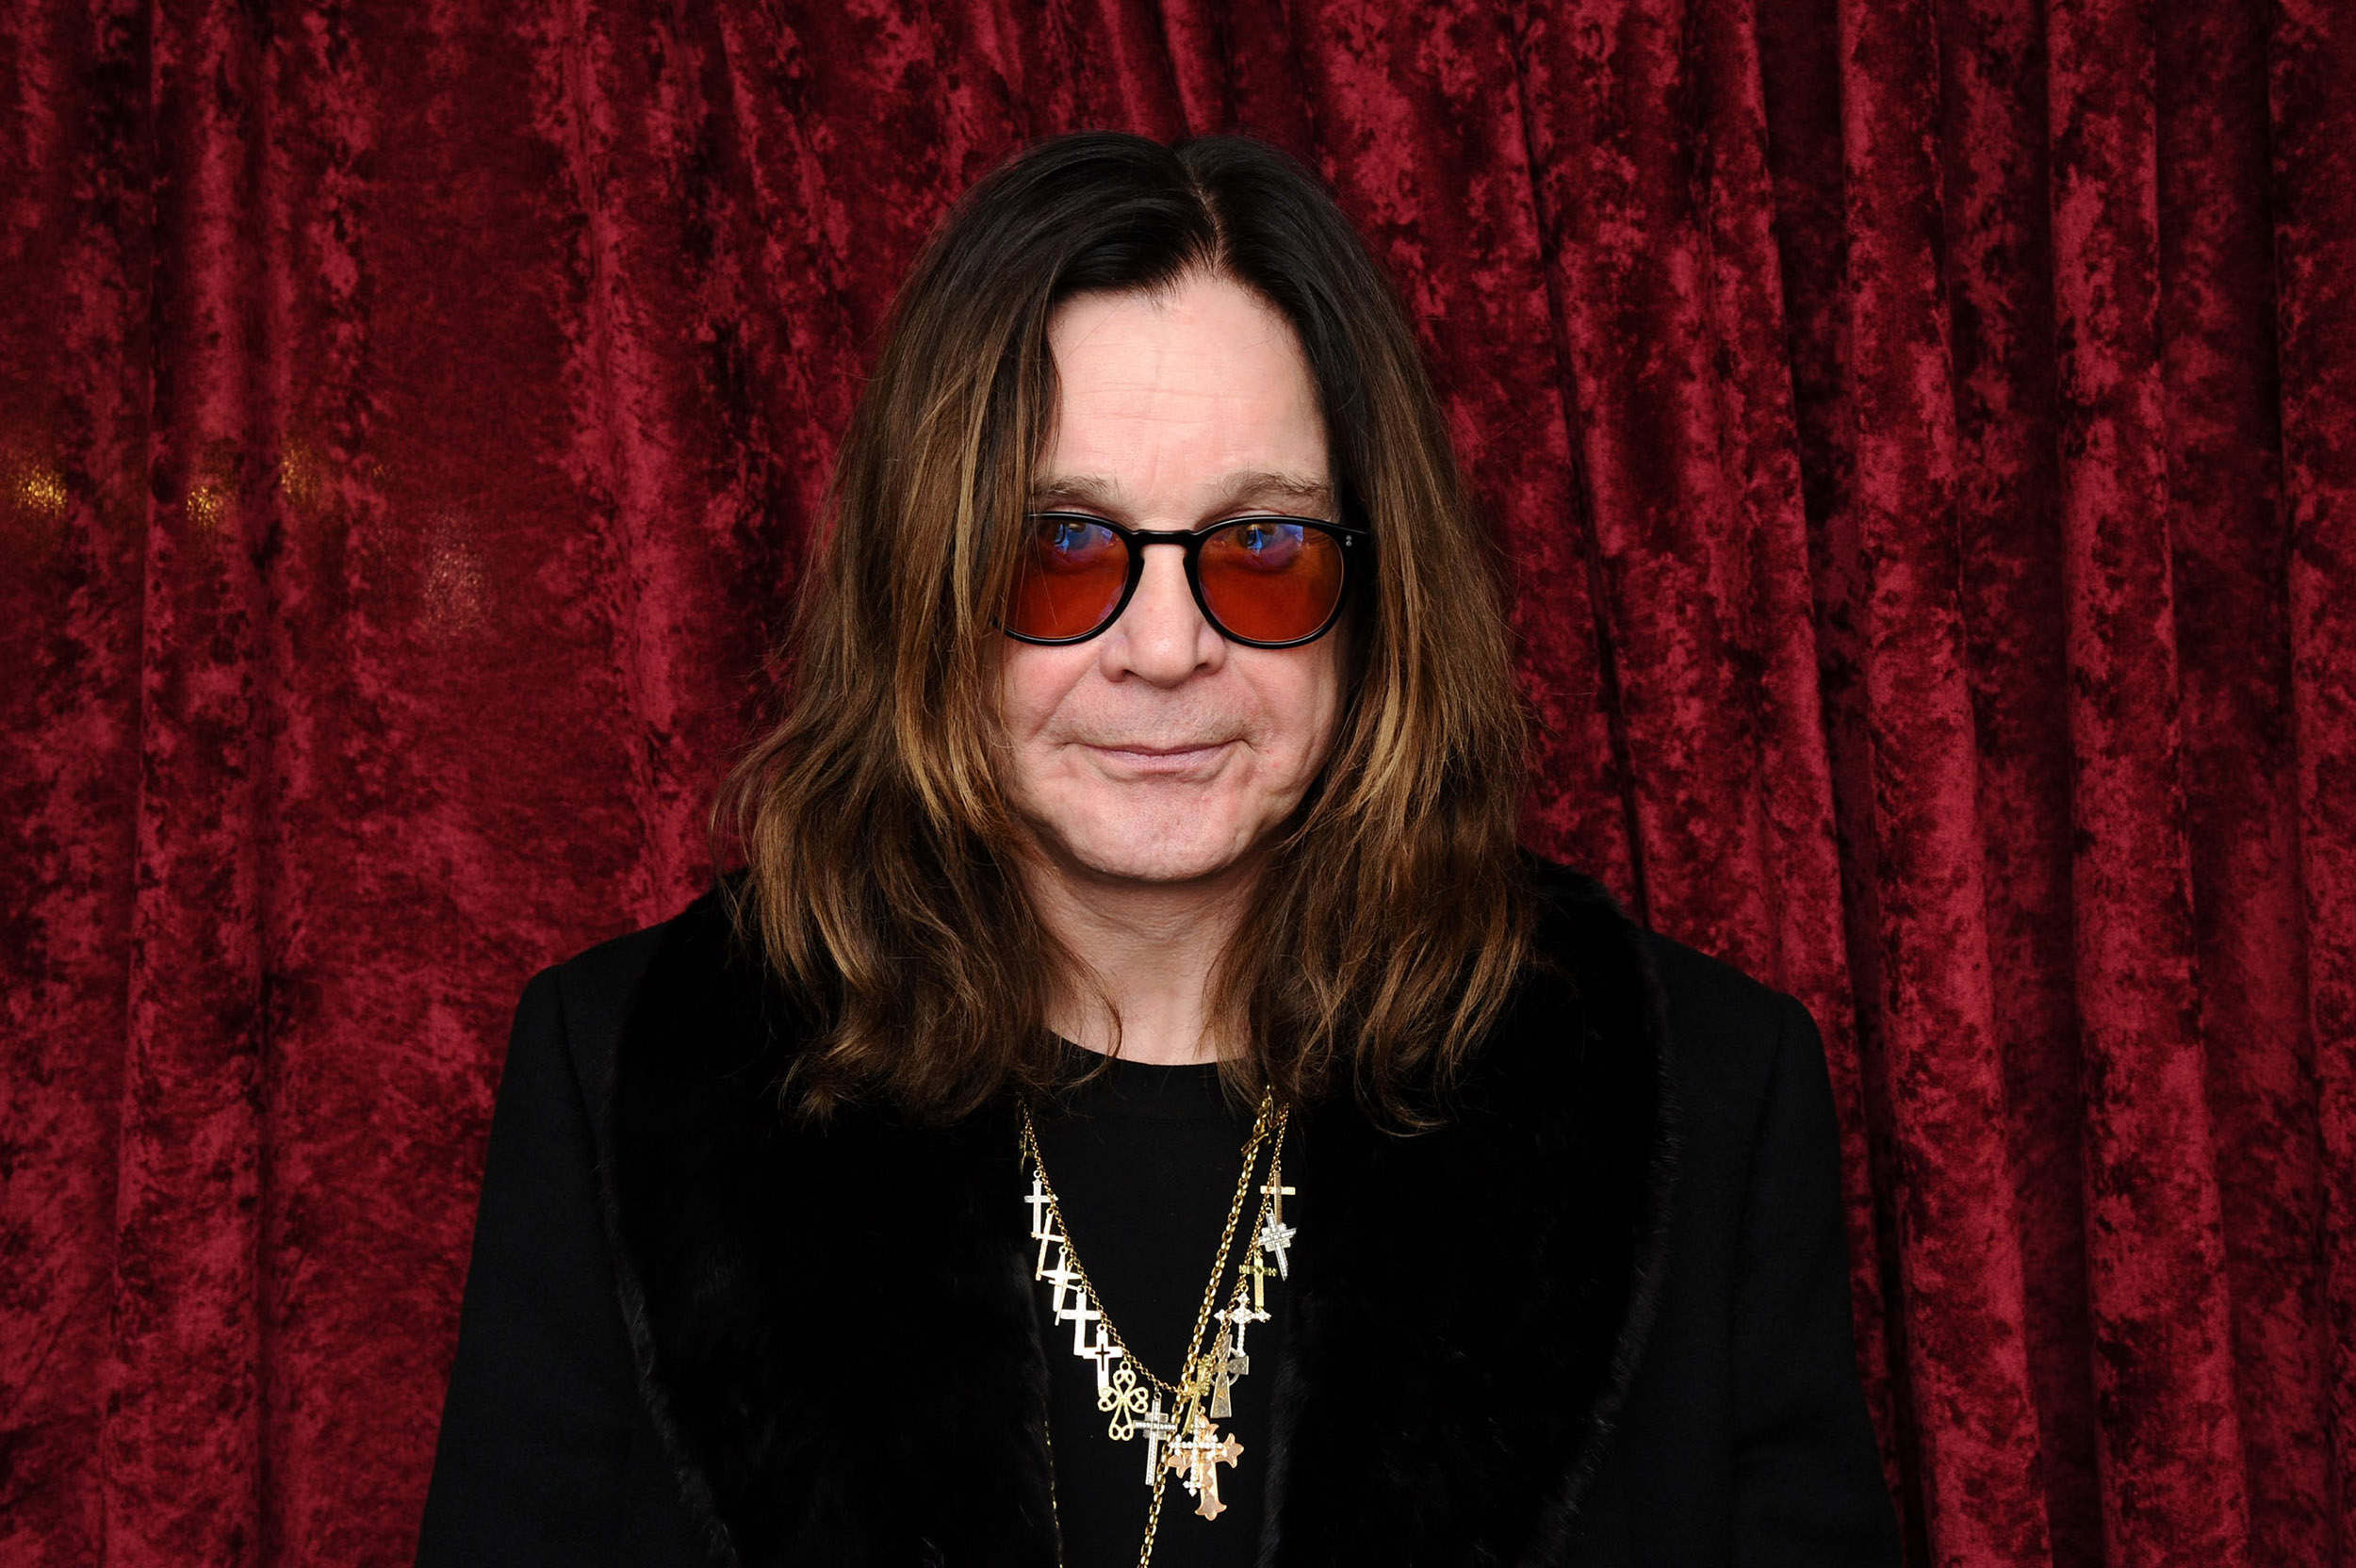 ozzy-osbourne-biography-the-nine-lives-of-ozzy-osbourne